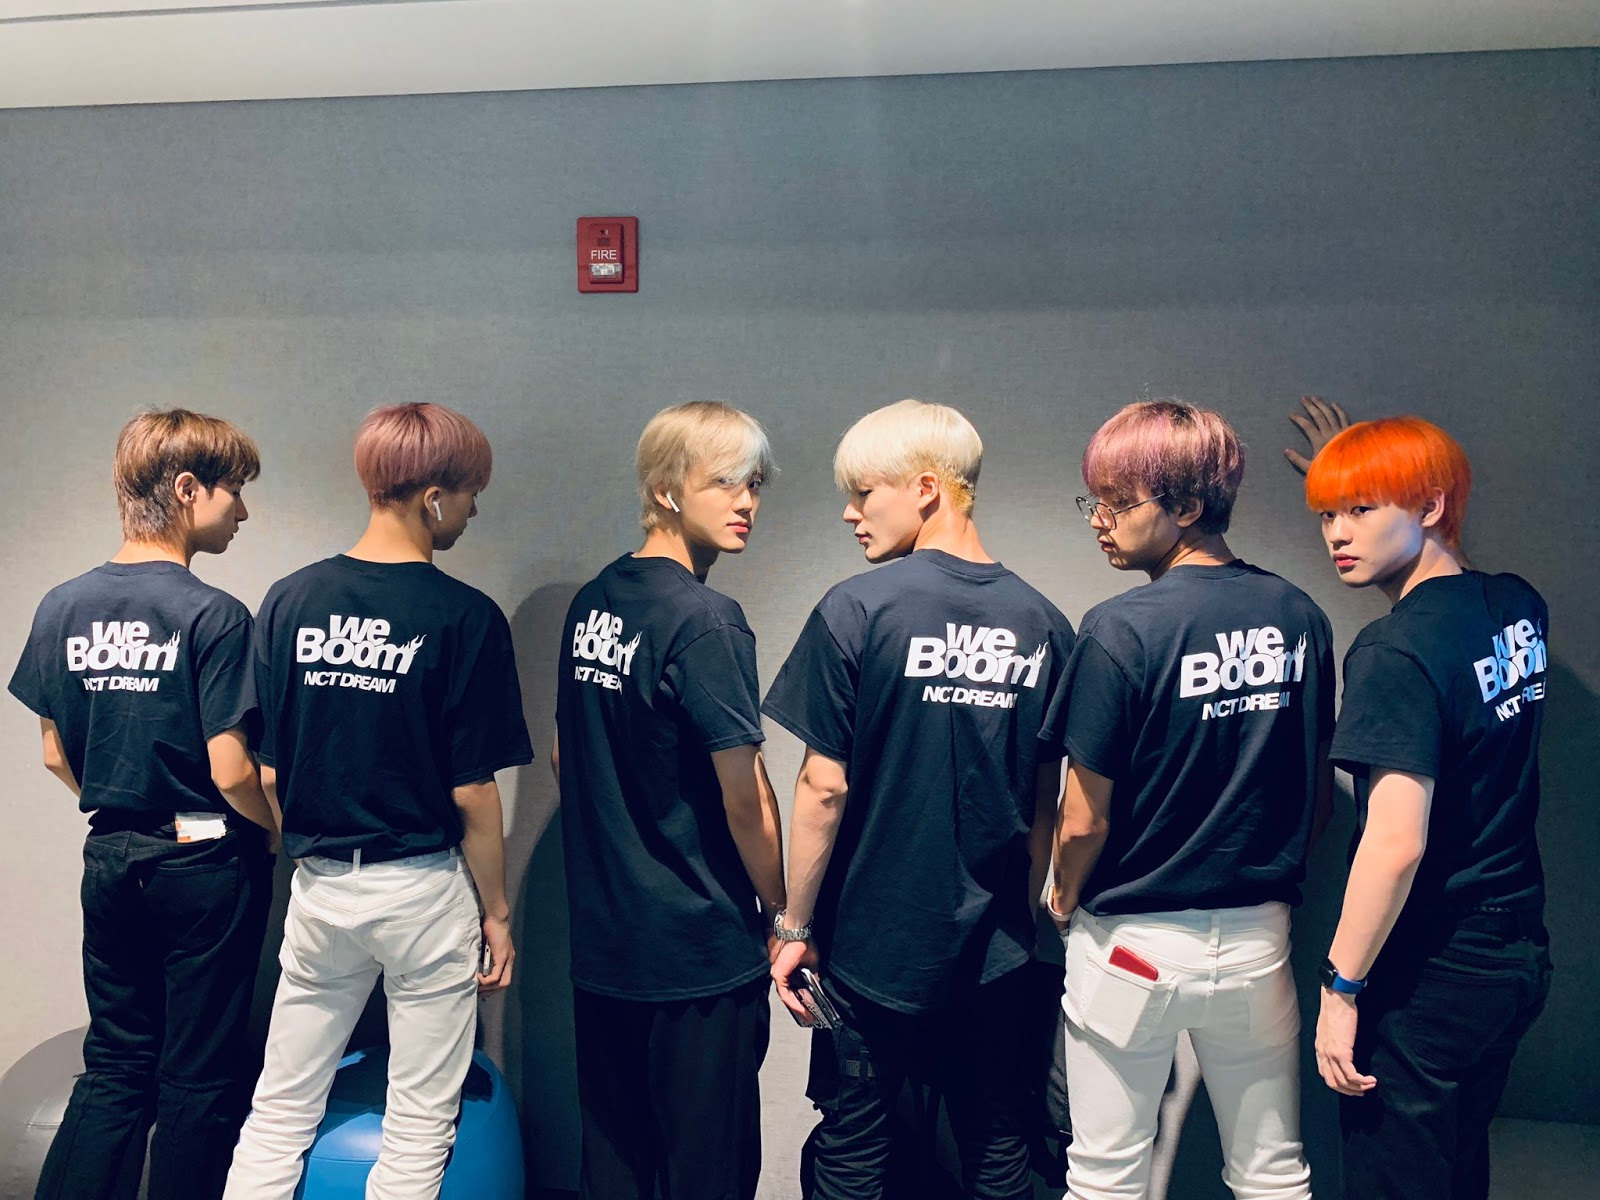 NCT Dream We Boom Photo Collection